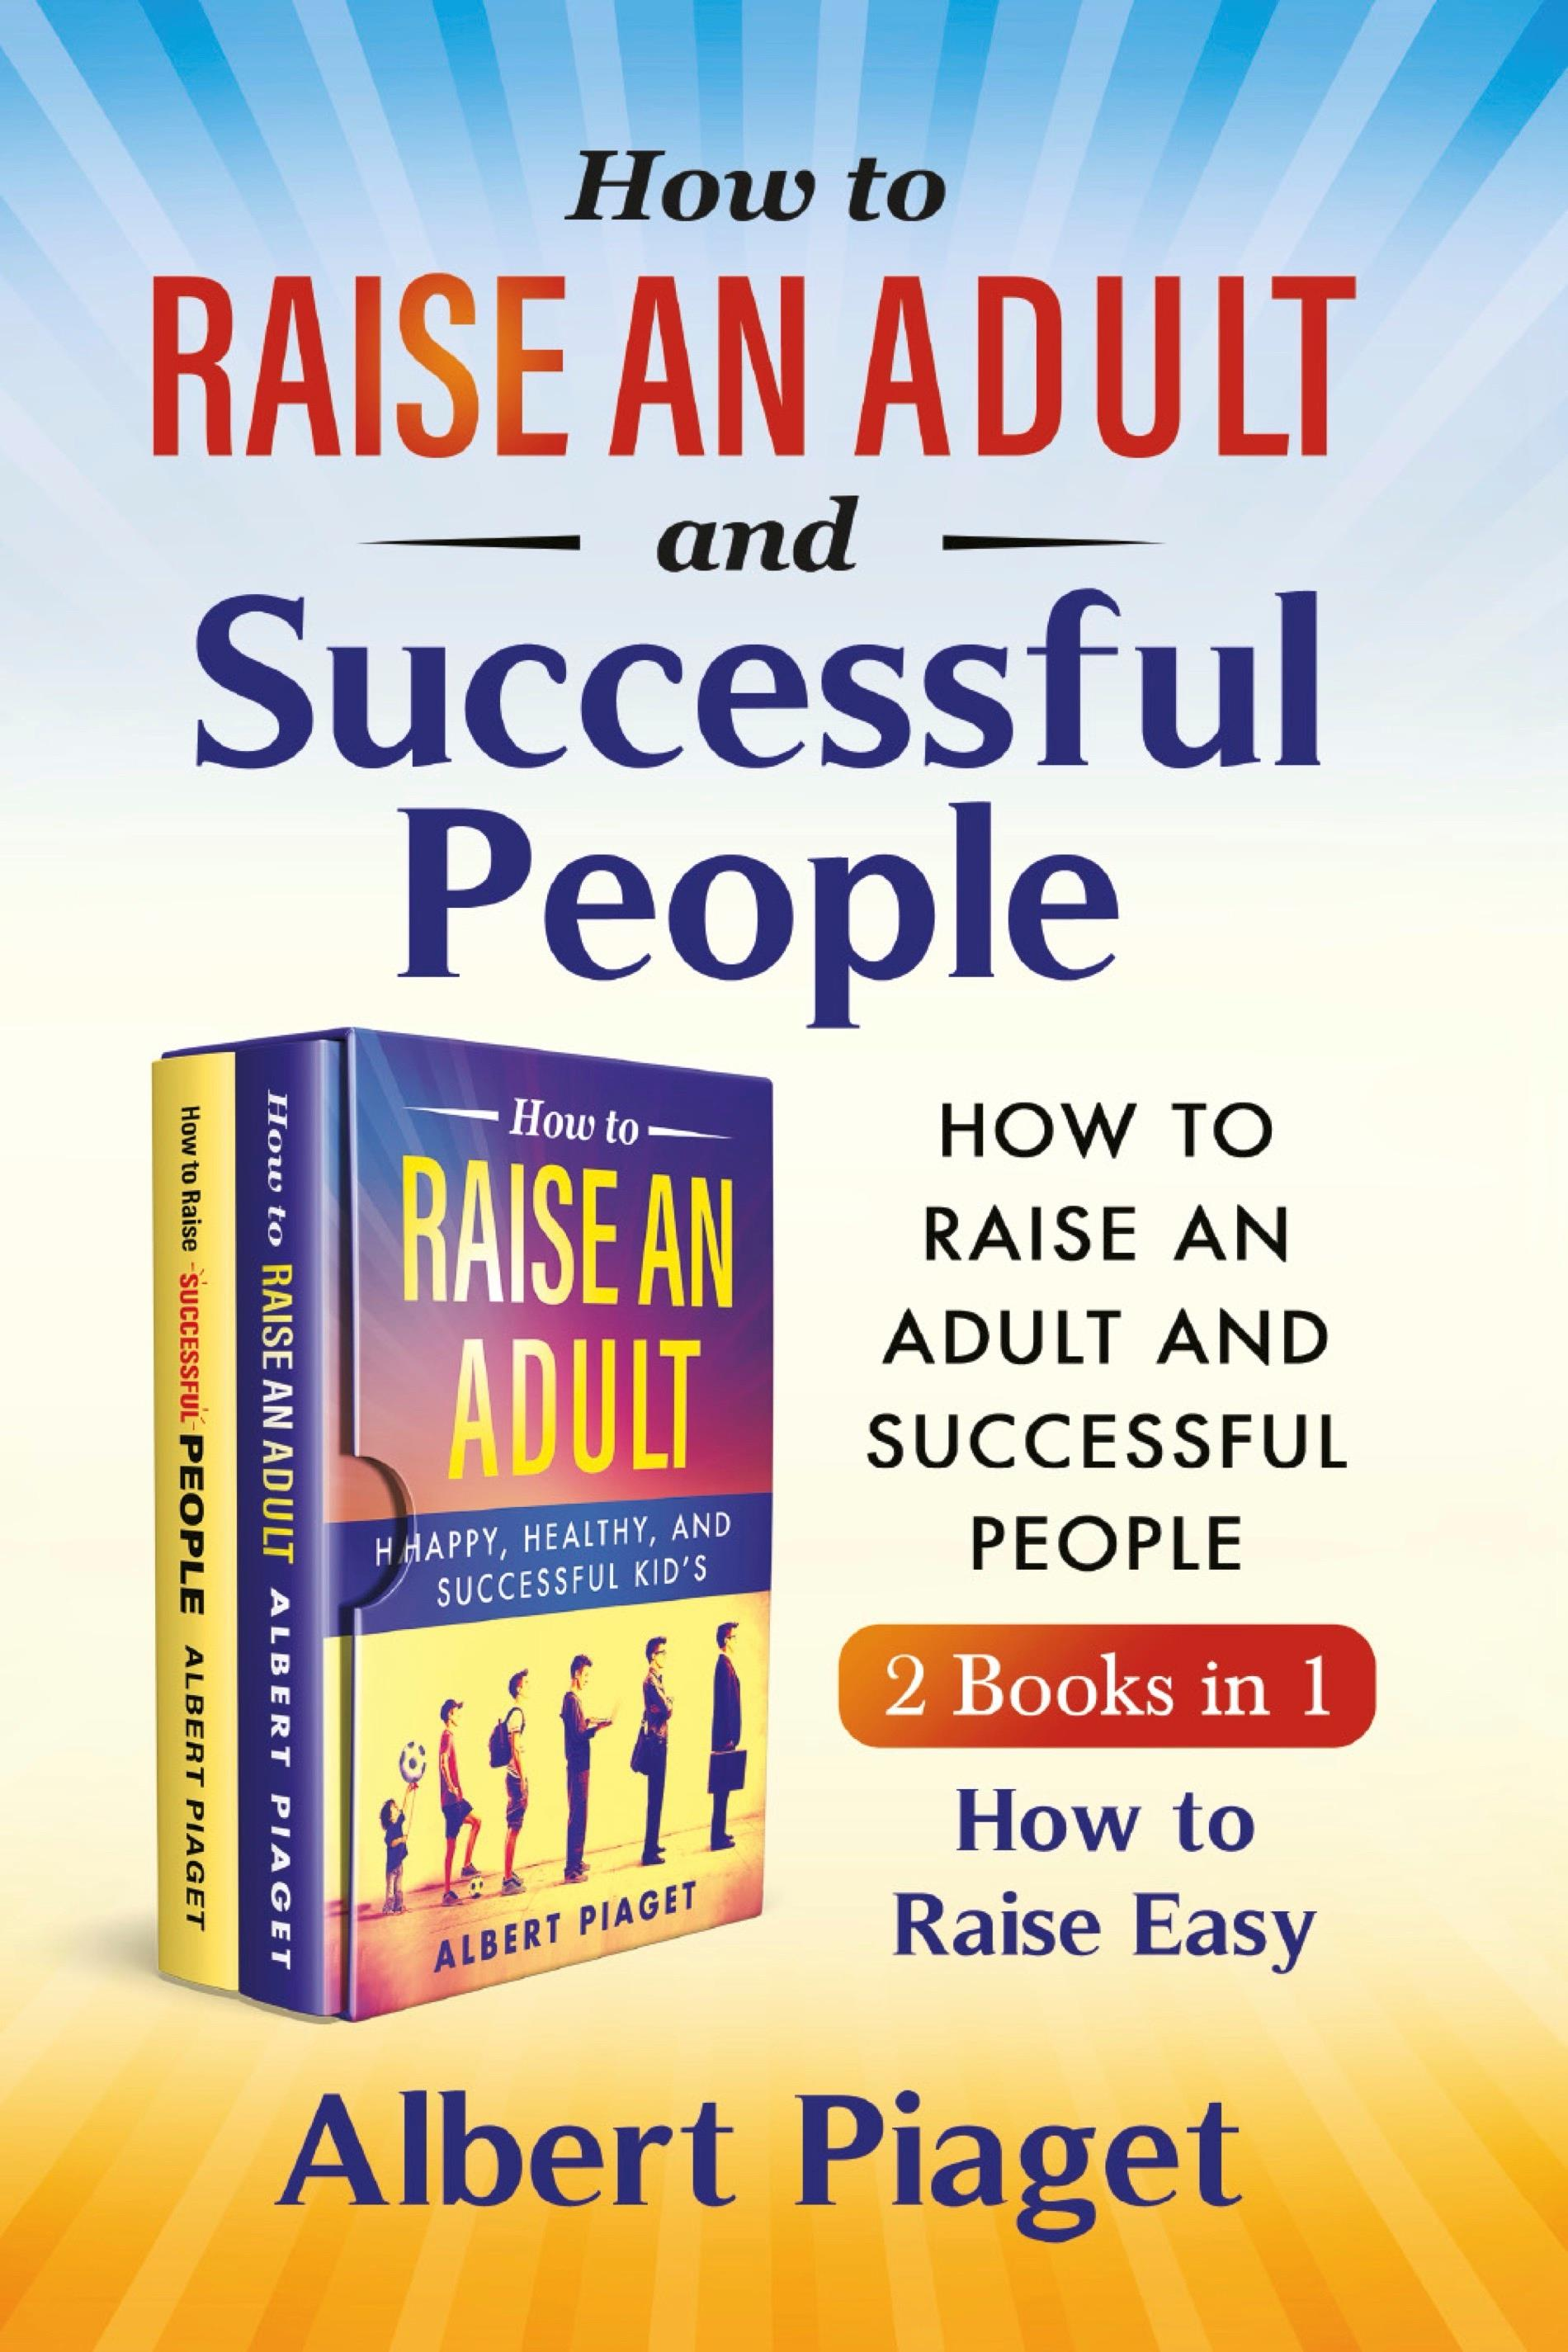 How to Raise an Adult and Successful People (2 Books in 1). How to Raise Easy